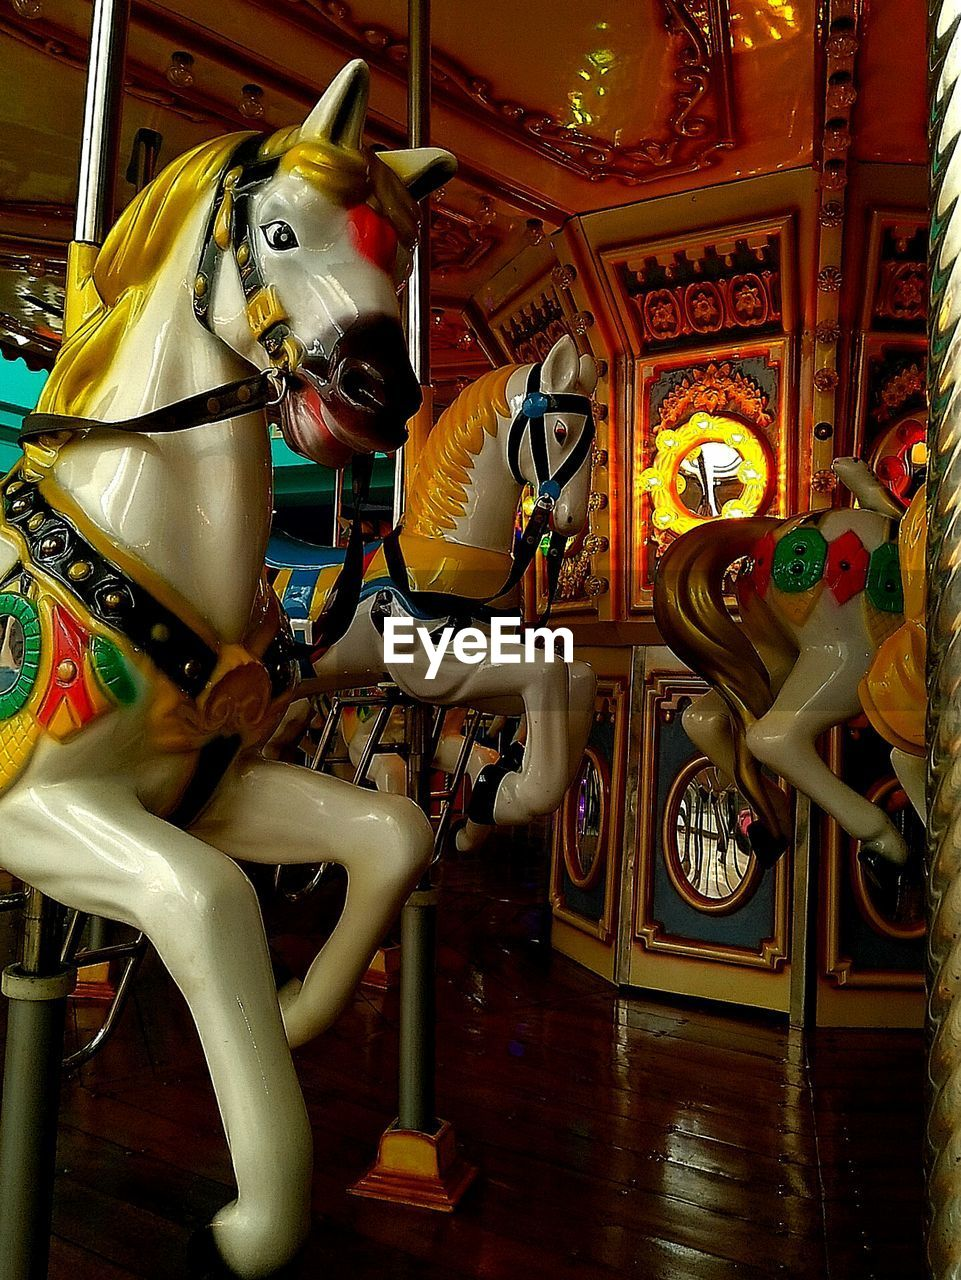 amusement park, carousel horses, horse, animal representation, carousel, amusement park ride, arts culture and entertainment, no people, illuminated, night, enjoyment, merry-go-round, indoors